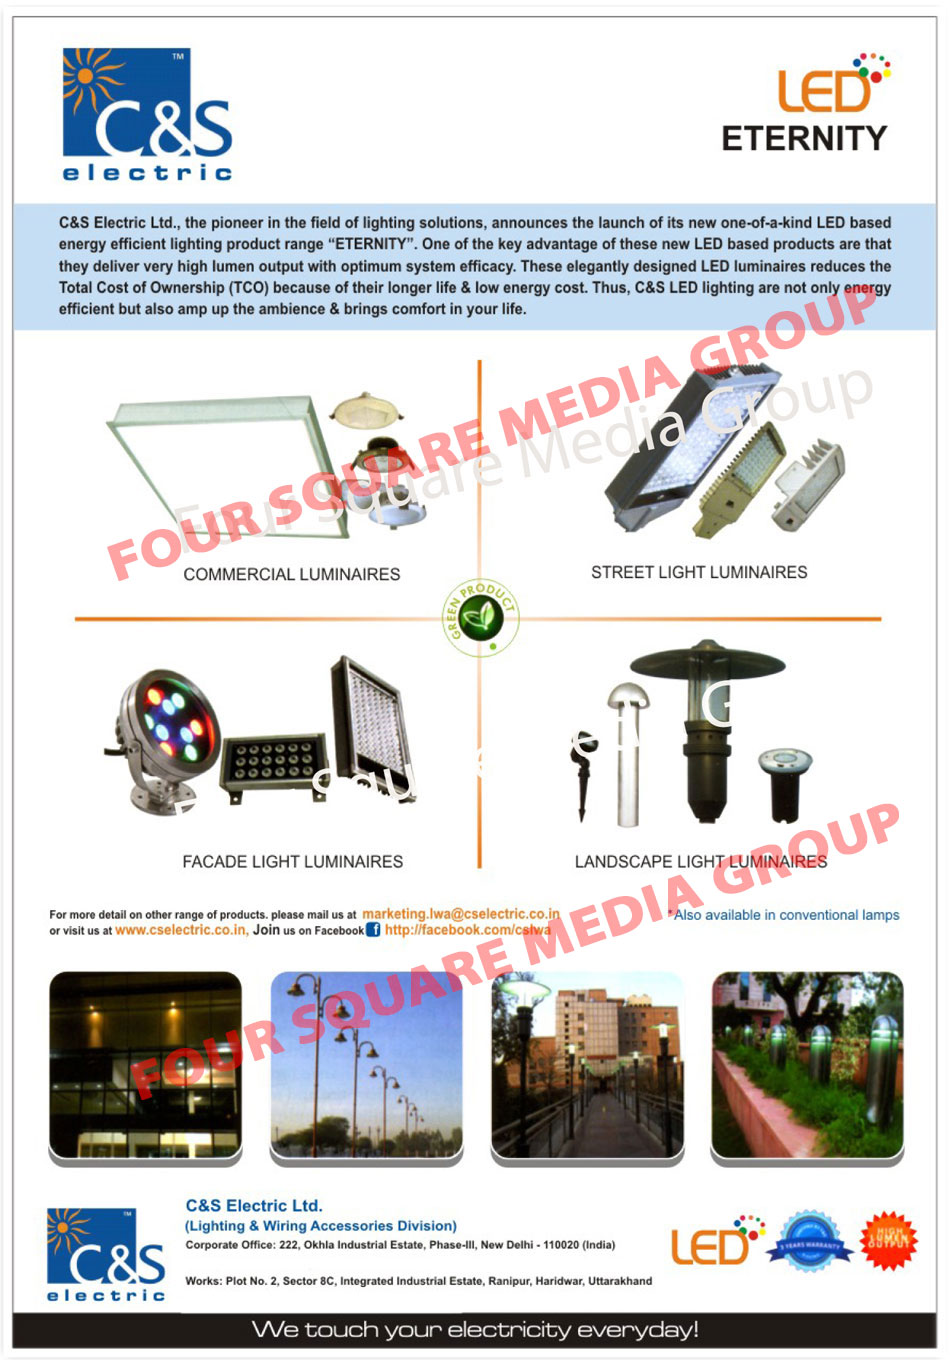 Facade Light Luminaires, Landscape Light Laminaires, Led Lighting Products, Luminaires, Street Light Luminaires, Solar Power Solution, Solar PV Power Plants, Led Lights, Led Bulbs, Led Tubes, Street Lights, Pole Lights, Solar Power System, Flood Lights, Industrial Lights, Down Lights, Ceilling Lights, RCCB, MCB